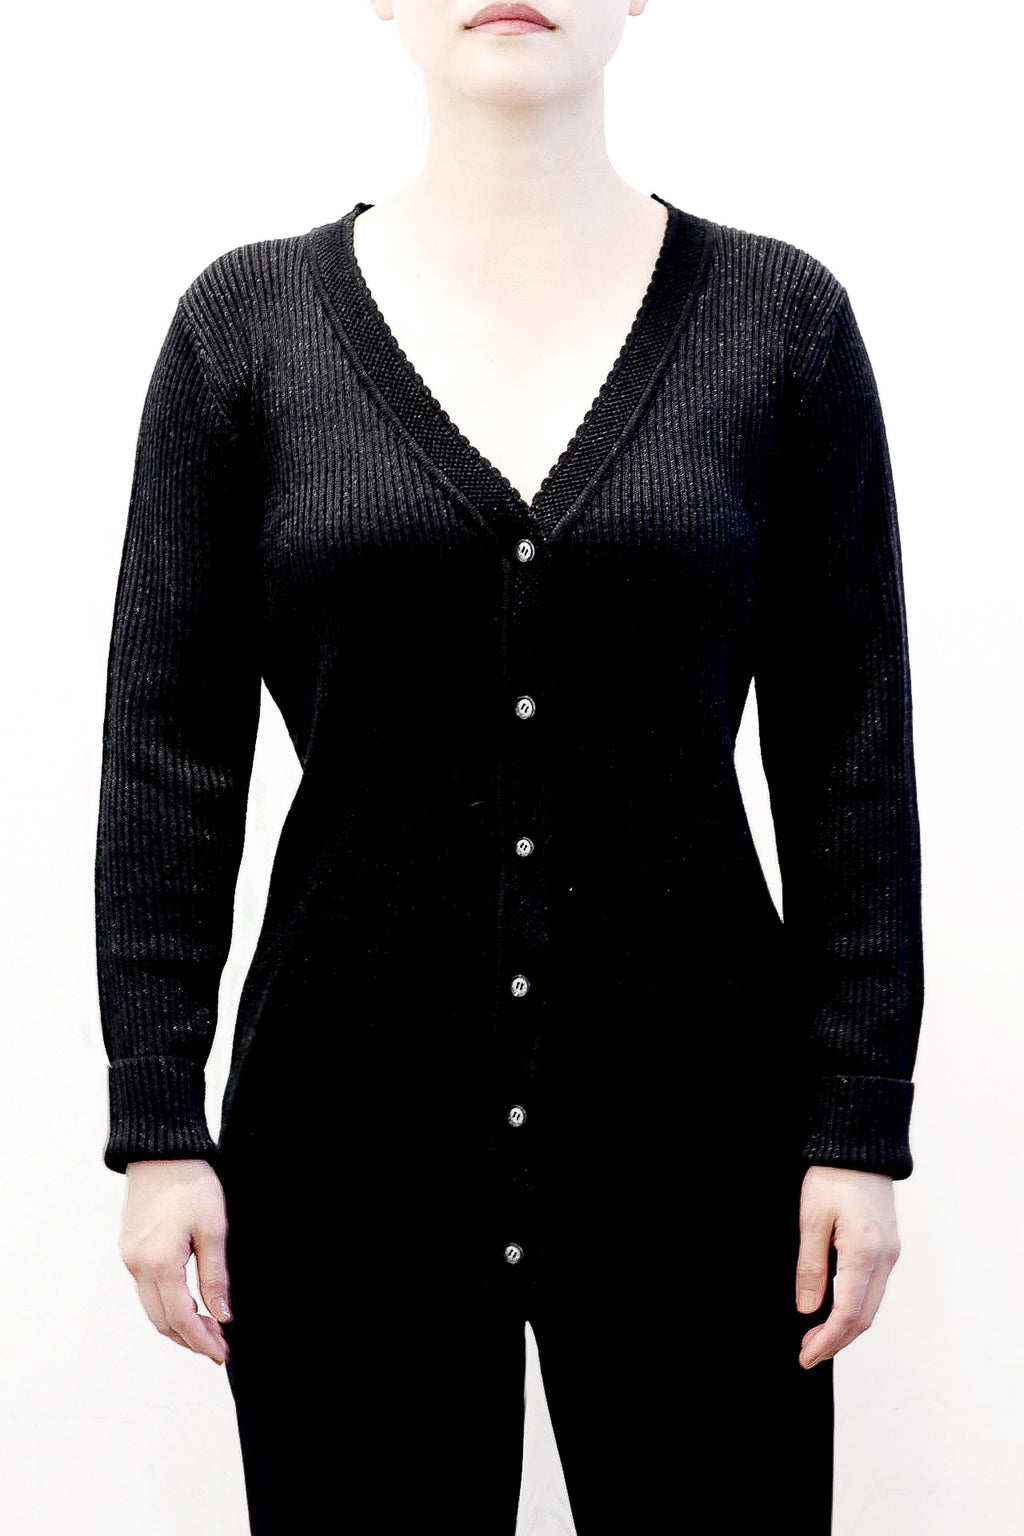 emma chai Light knit. Shimmering soft-to-the-touch black metallic cardigan. Button closures at center front. Neckline [ ] . 30% wool, 30% silk. Dry clean. May hand wash cold, using baby shampoo or mild detergent. Style #180116. Imported @emmachaioficial emma chai